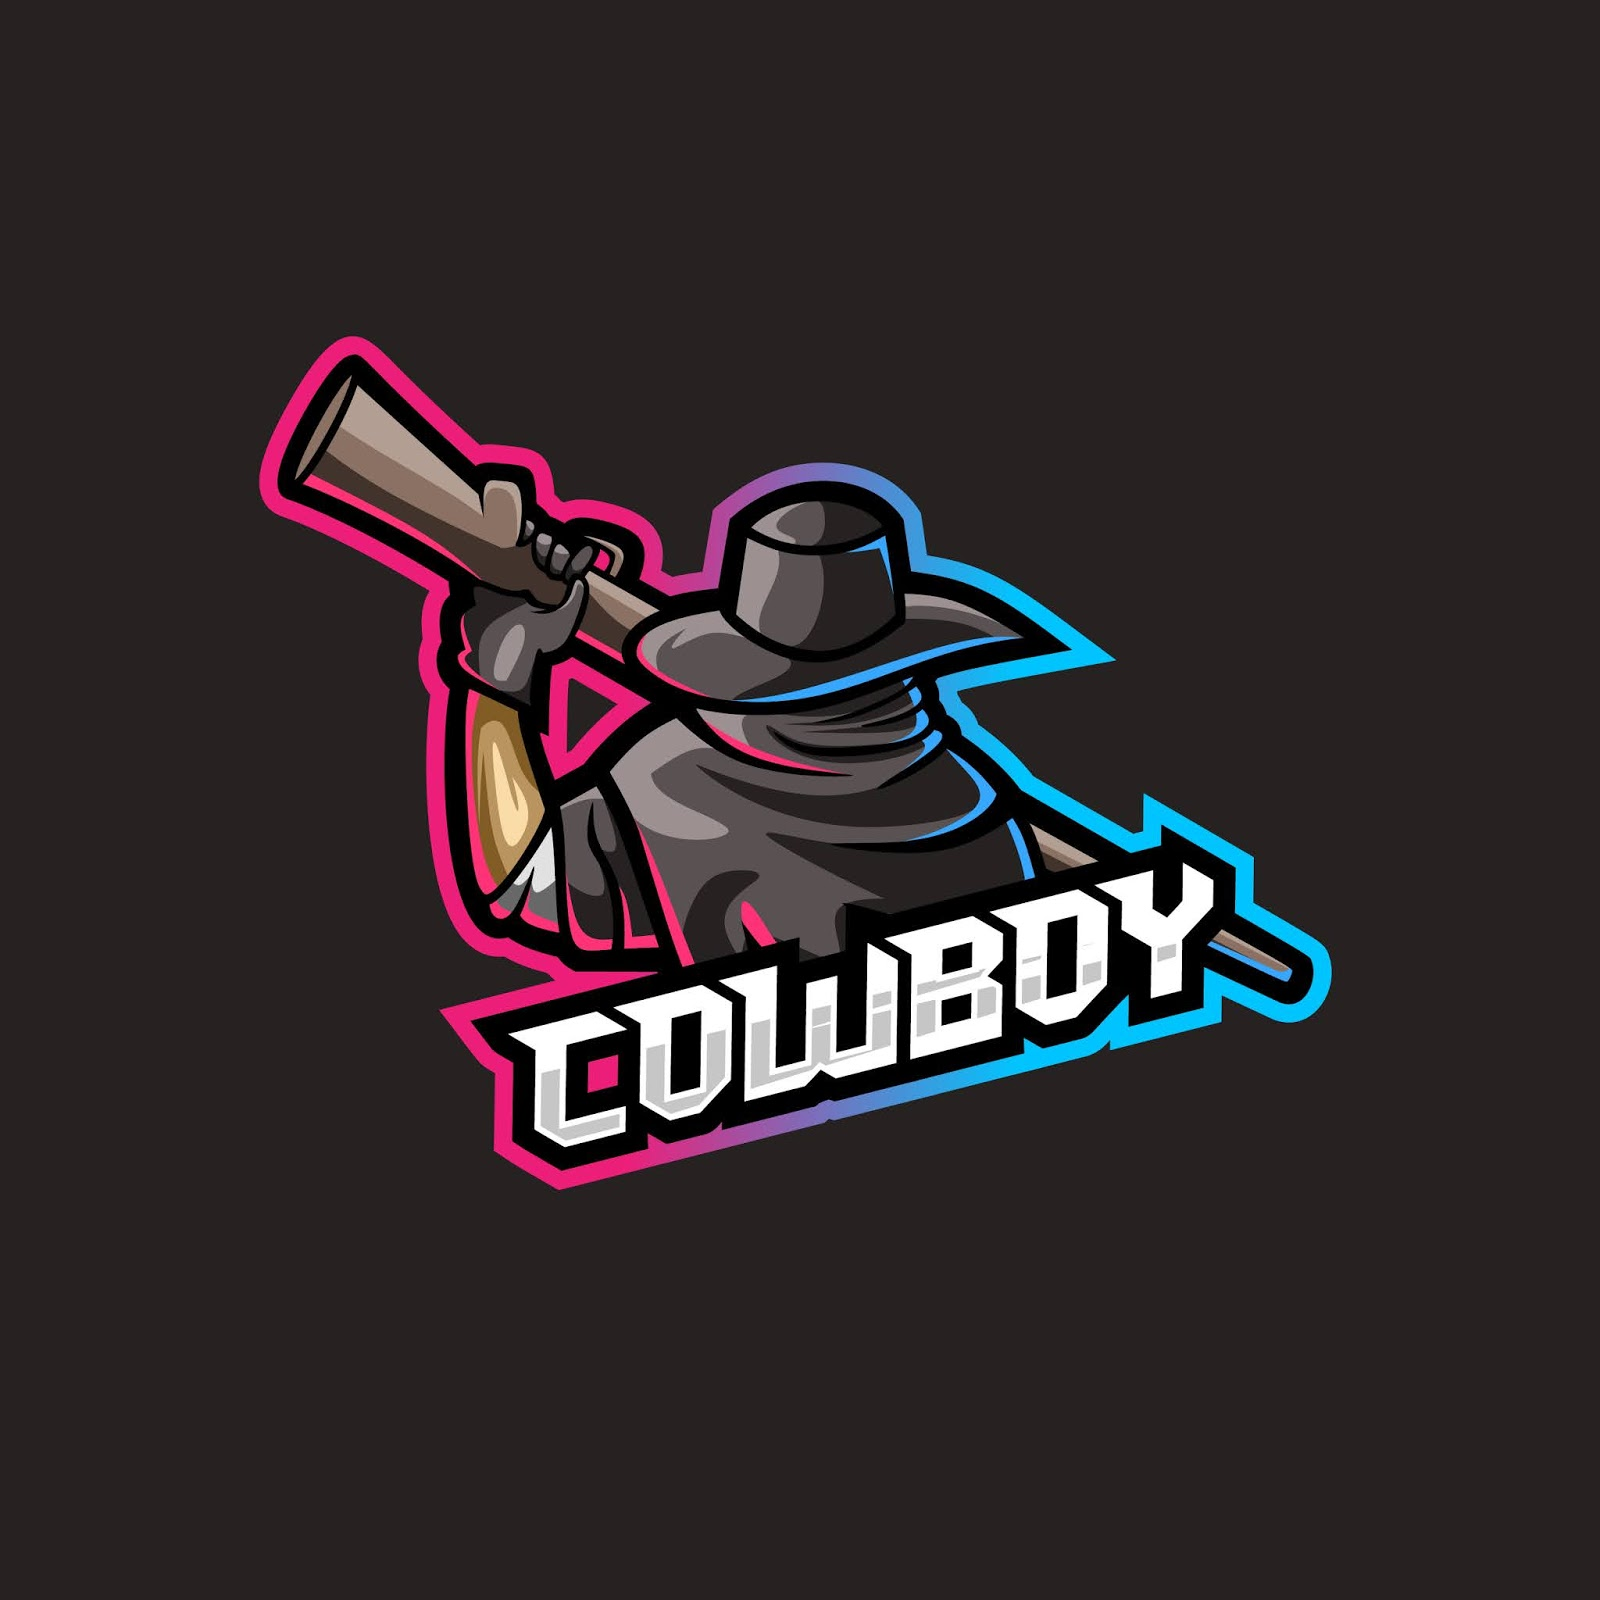 Cowboy With Weapon Illustration Free Download Vector CDR, AI, EPS and PNG Formats